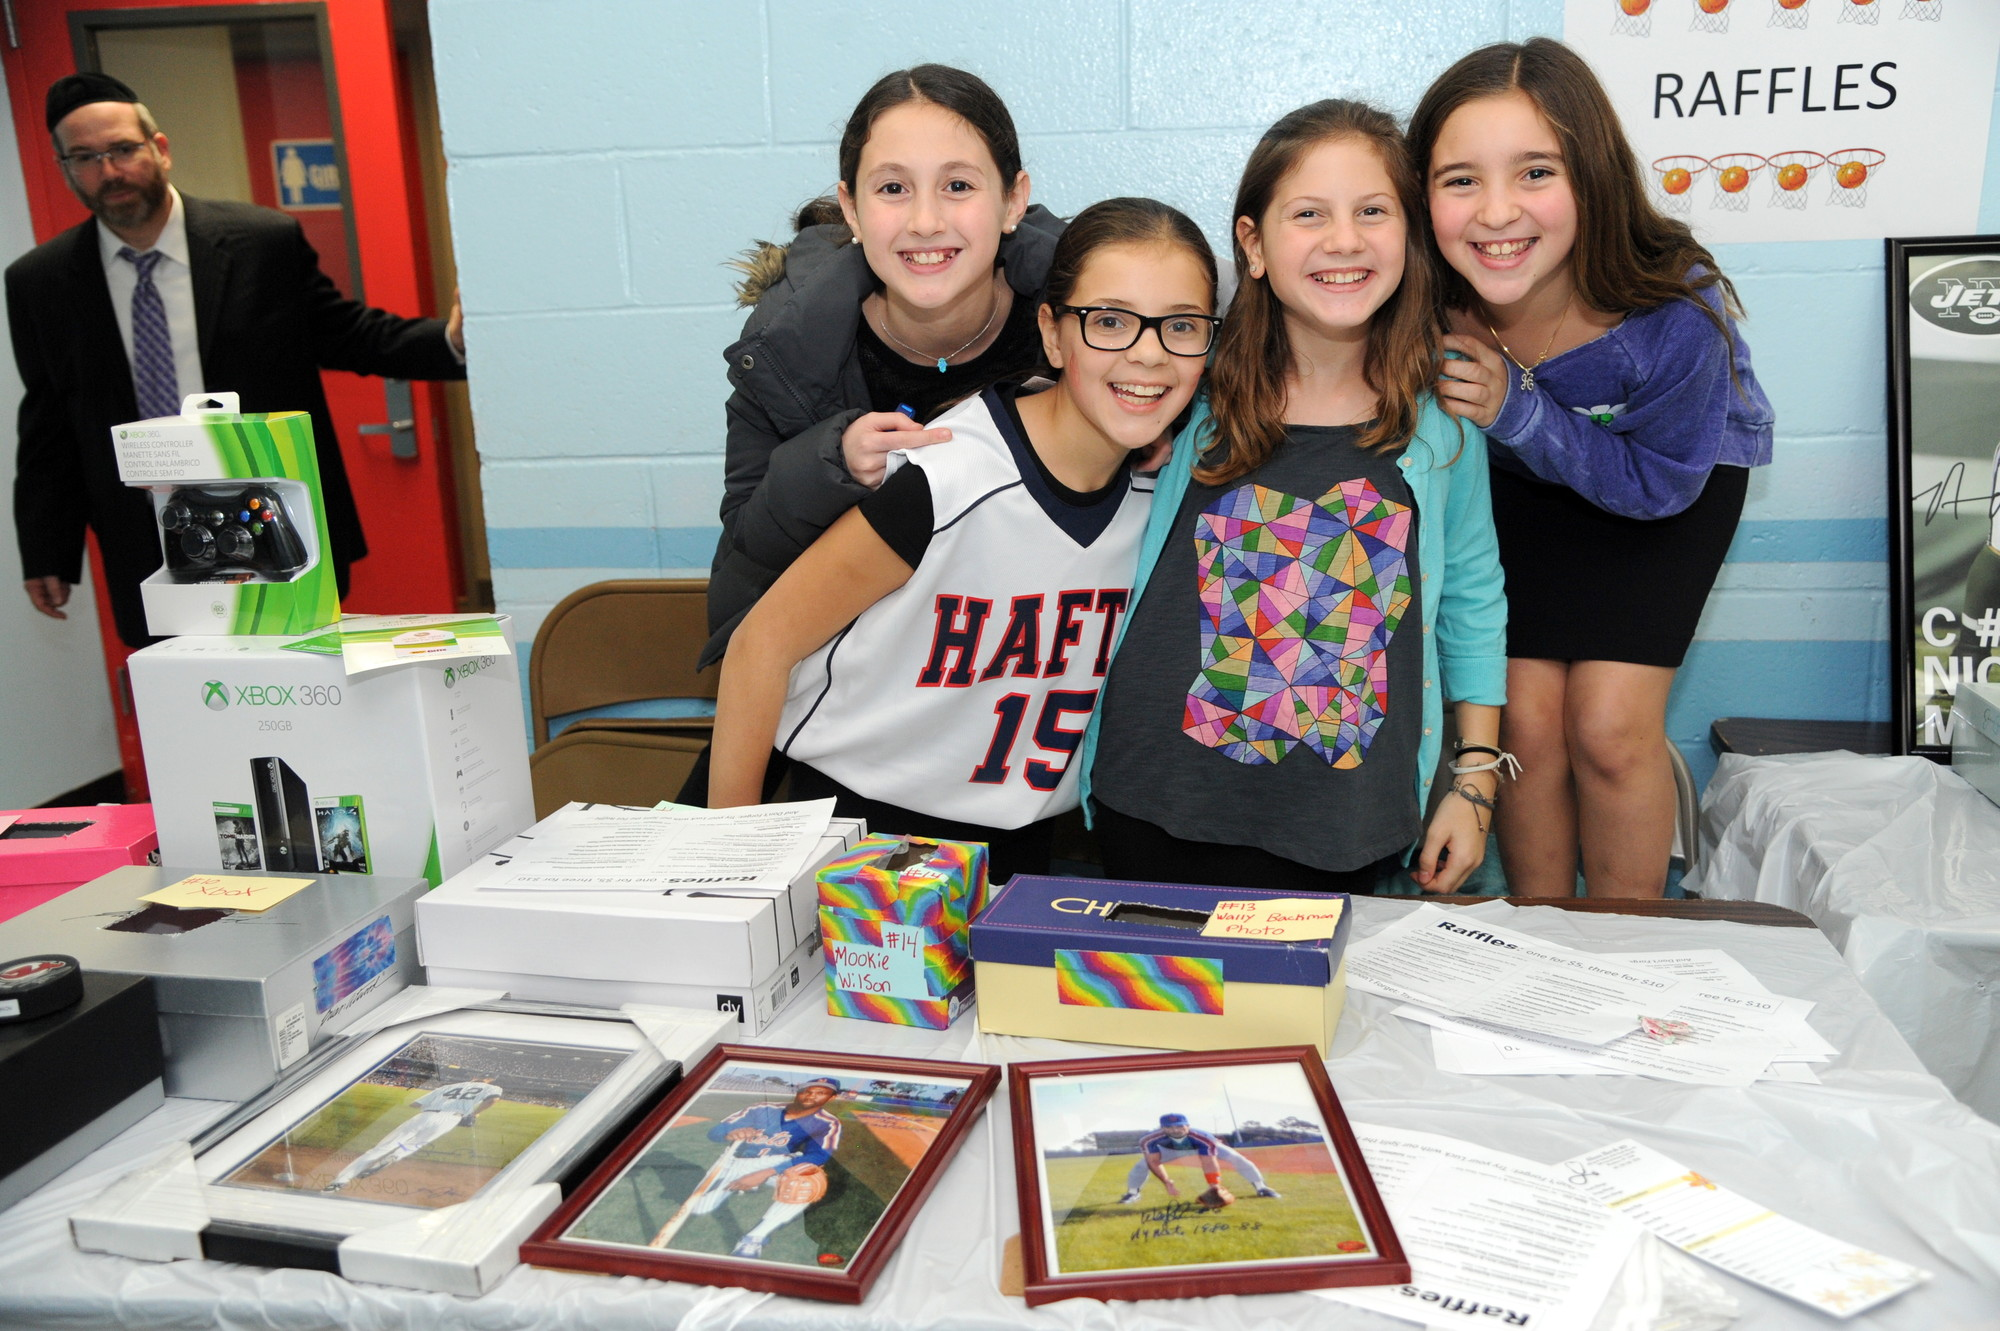 Raising over $6,000 took more than a basketball game. From left were  Kira Solomon and Jessica Kornblum, both 11, Eliana Lazar, 12, and Ashley Van, 11, helped sell raffle tickets.